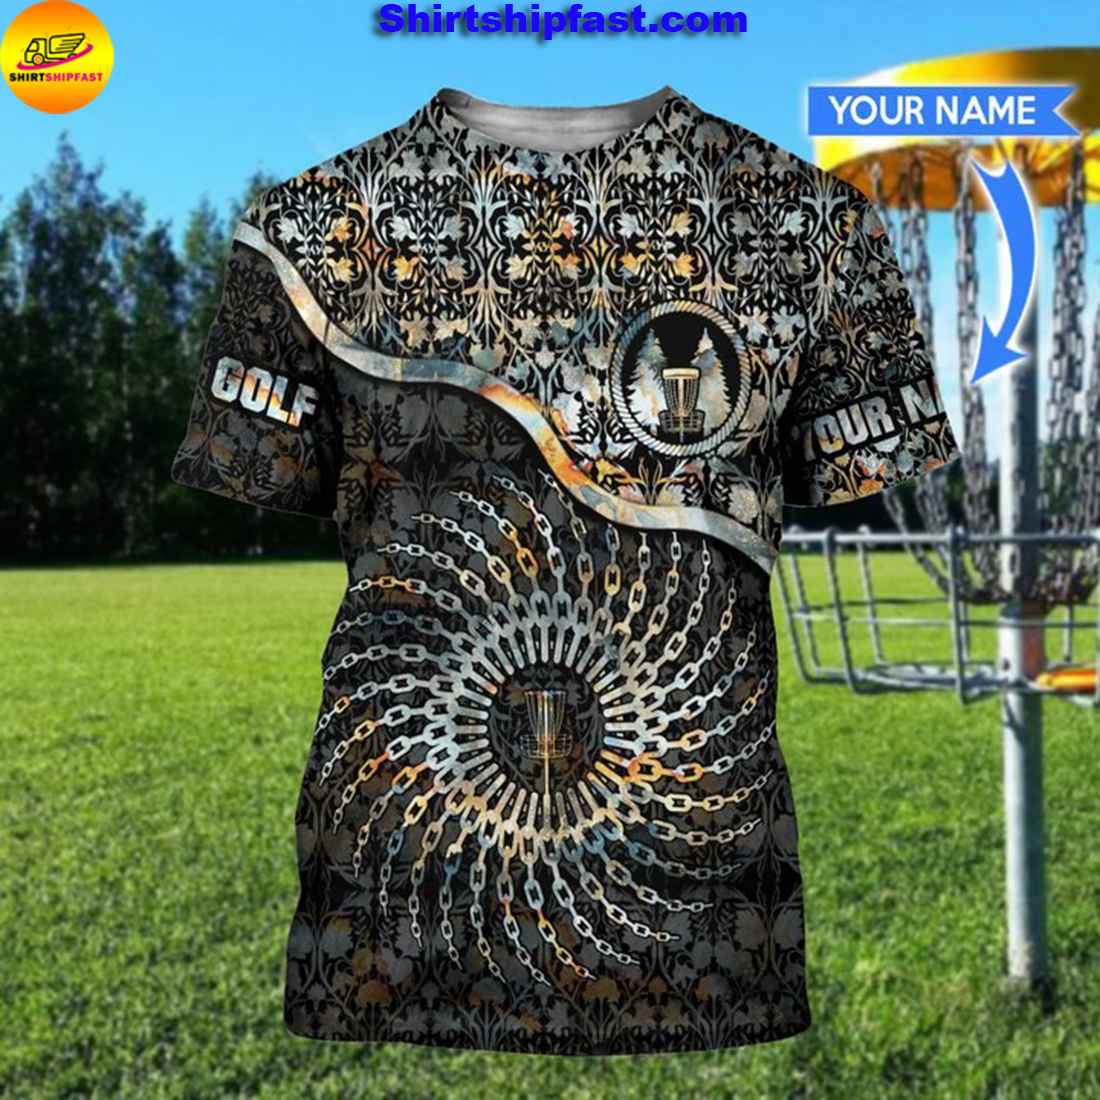 Disc golf chain personalized 3d t-shirt